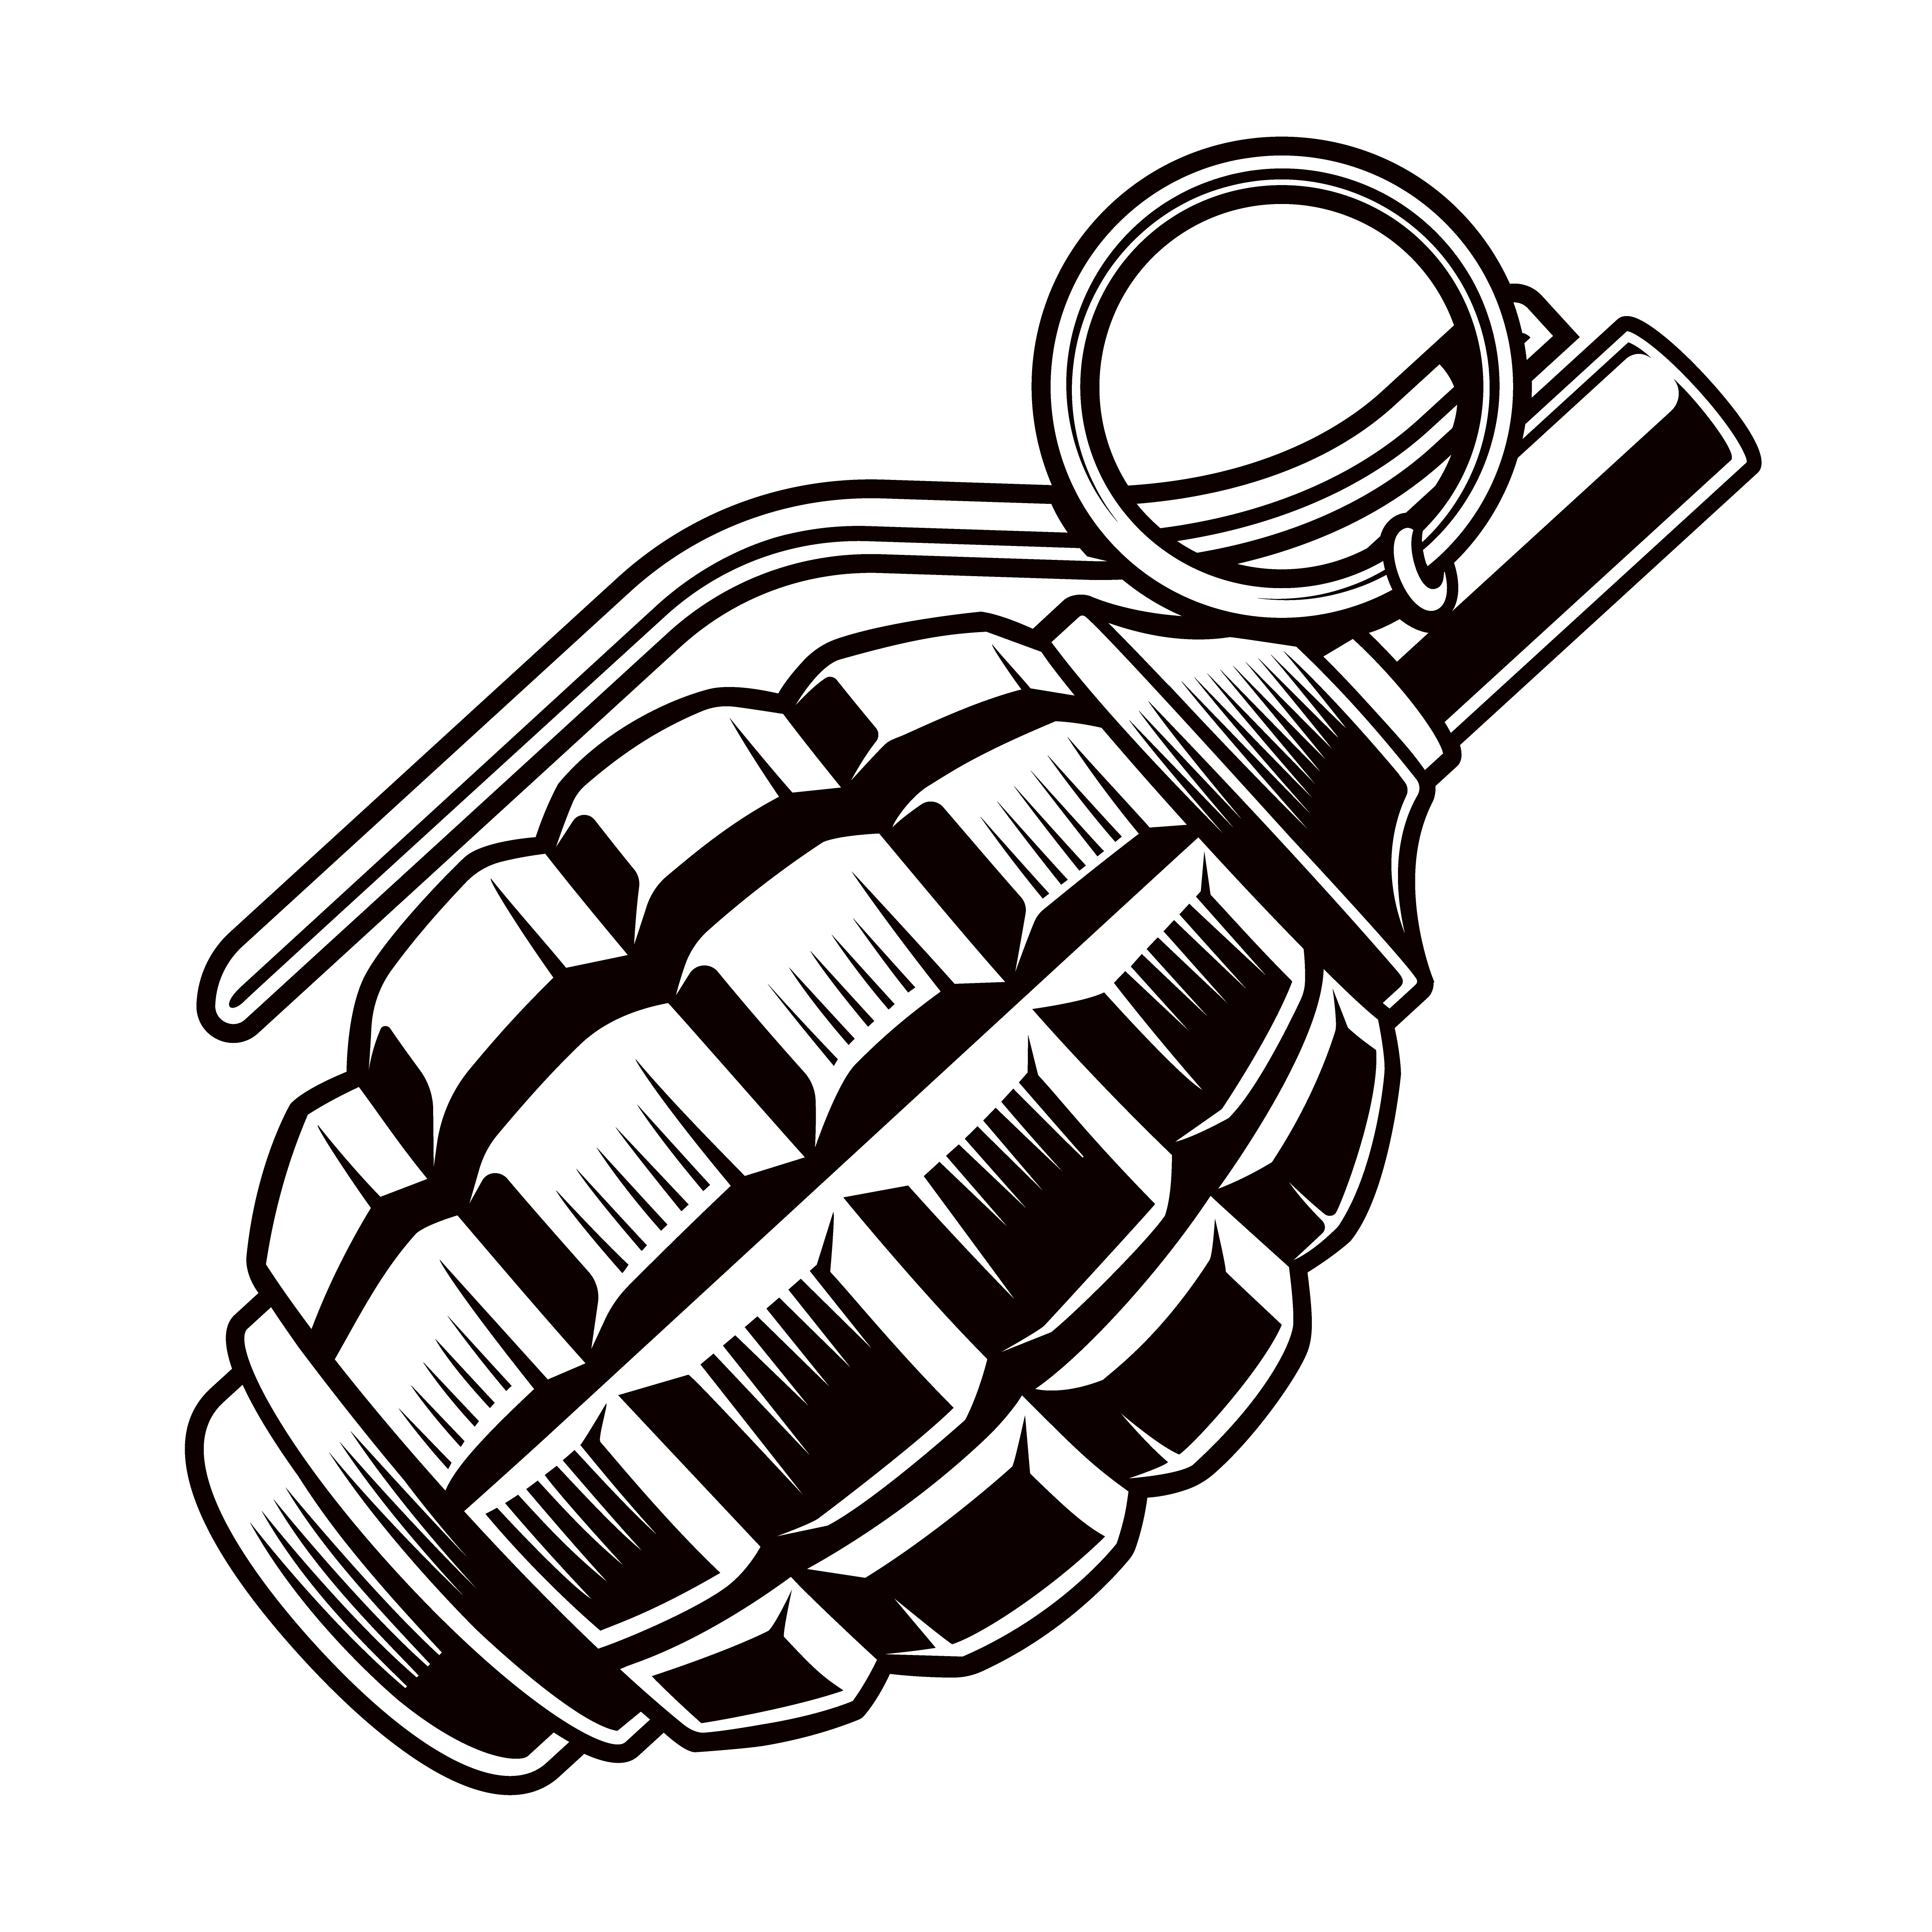 Grenade vector - Download Free Vectors, Clipart Graphics ...